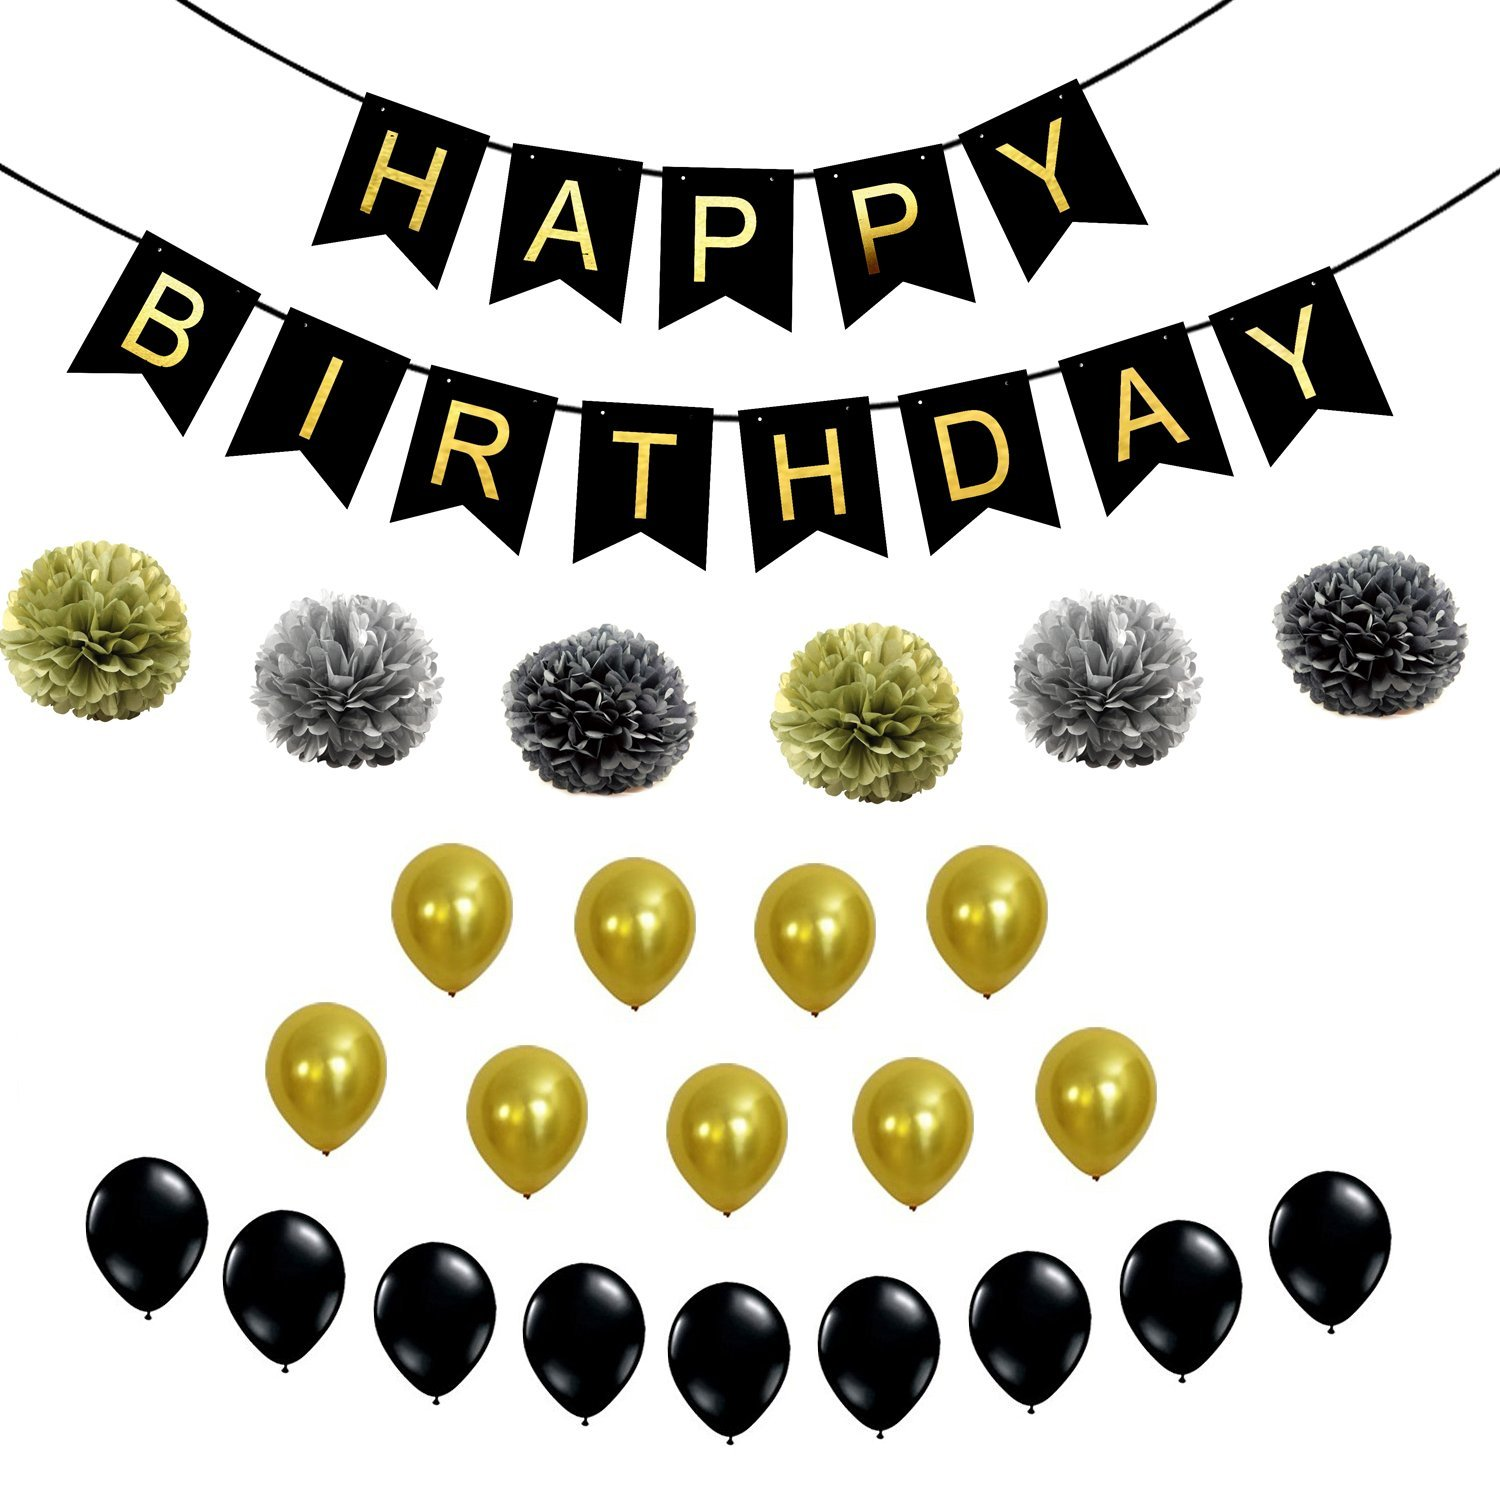 Black And Gold Happy Birthday Decoration Banner Set Best Fluffy Pom Poms With Ballons Party Supplies For 21st 30th 40th 50th Any Bday Boy Girl Theme